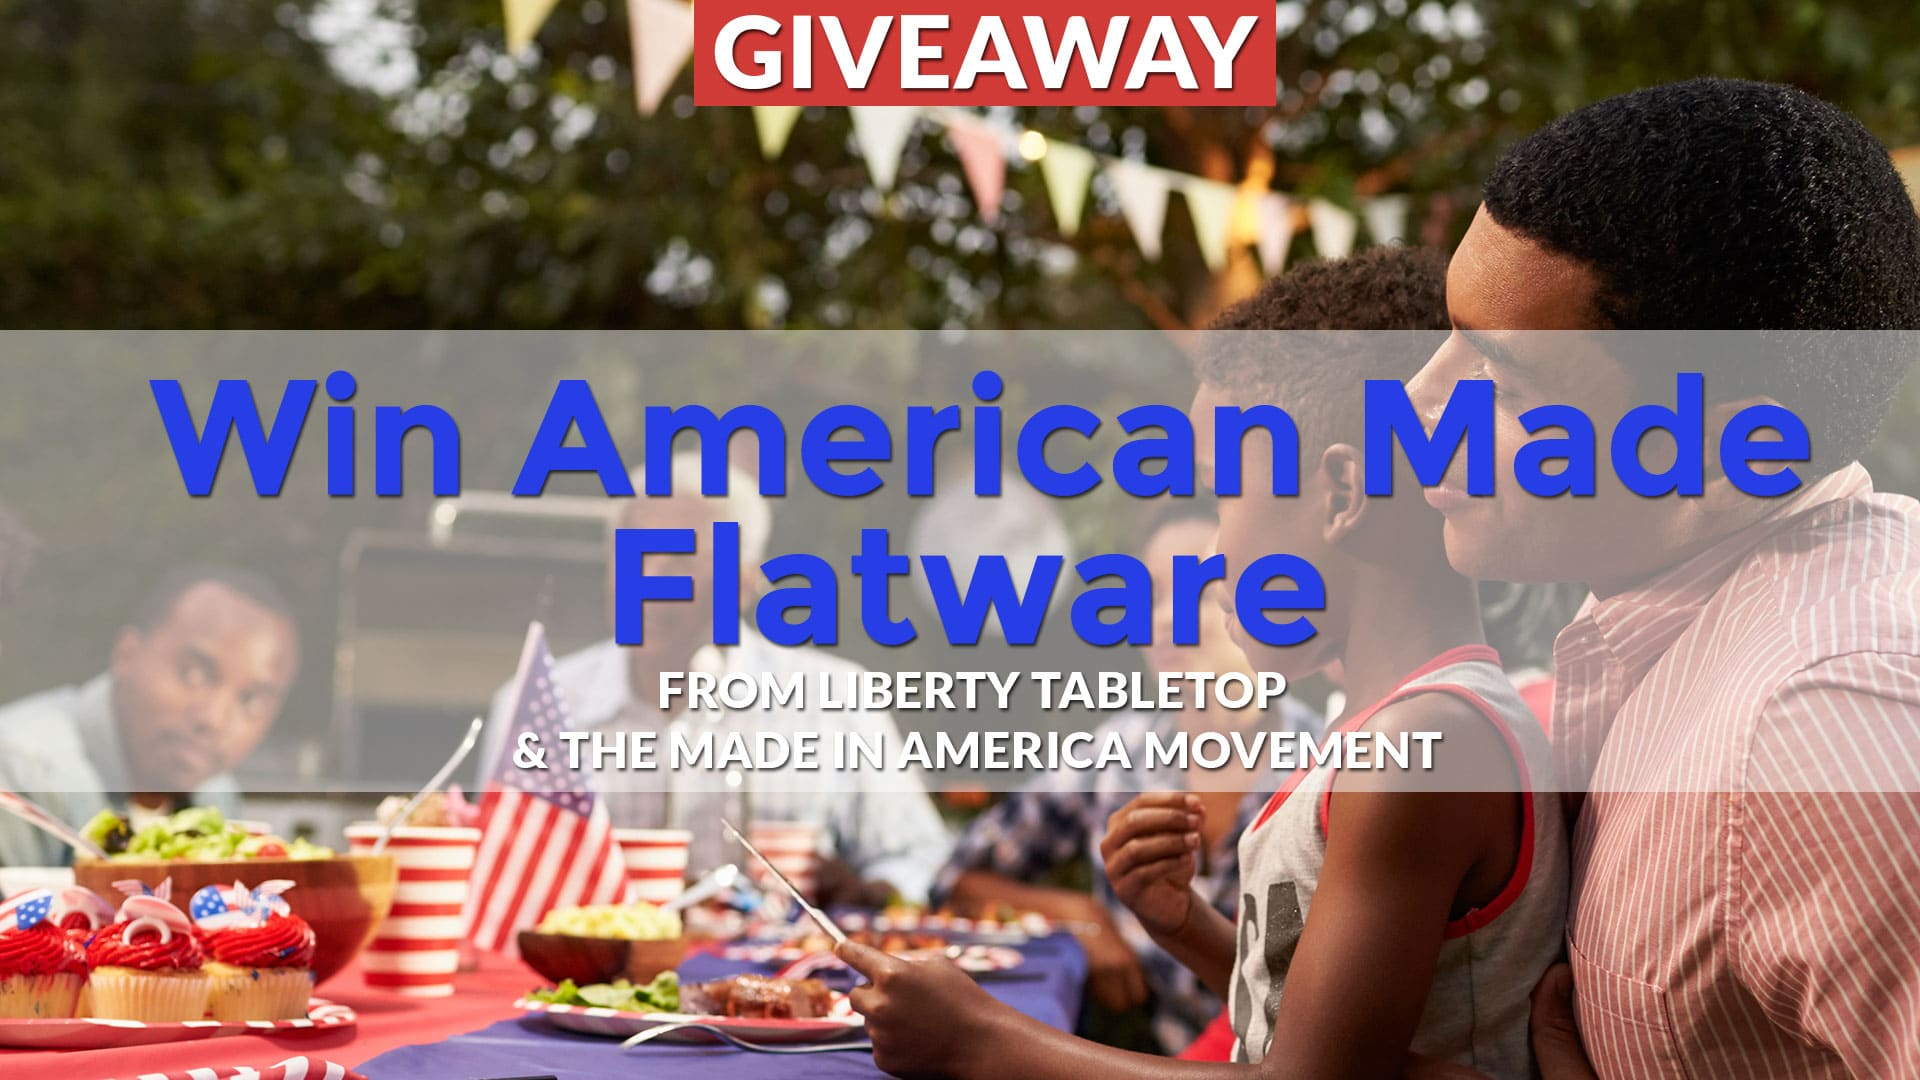 American Made Flatware, Made in USA Flatware, Made in America Week, Made in America Day, Made in America Month, Made in USA Week, Made in USA Month, made in usa products list, made in america products list, american made products list